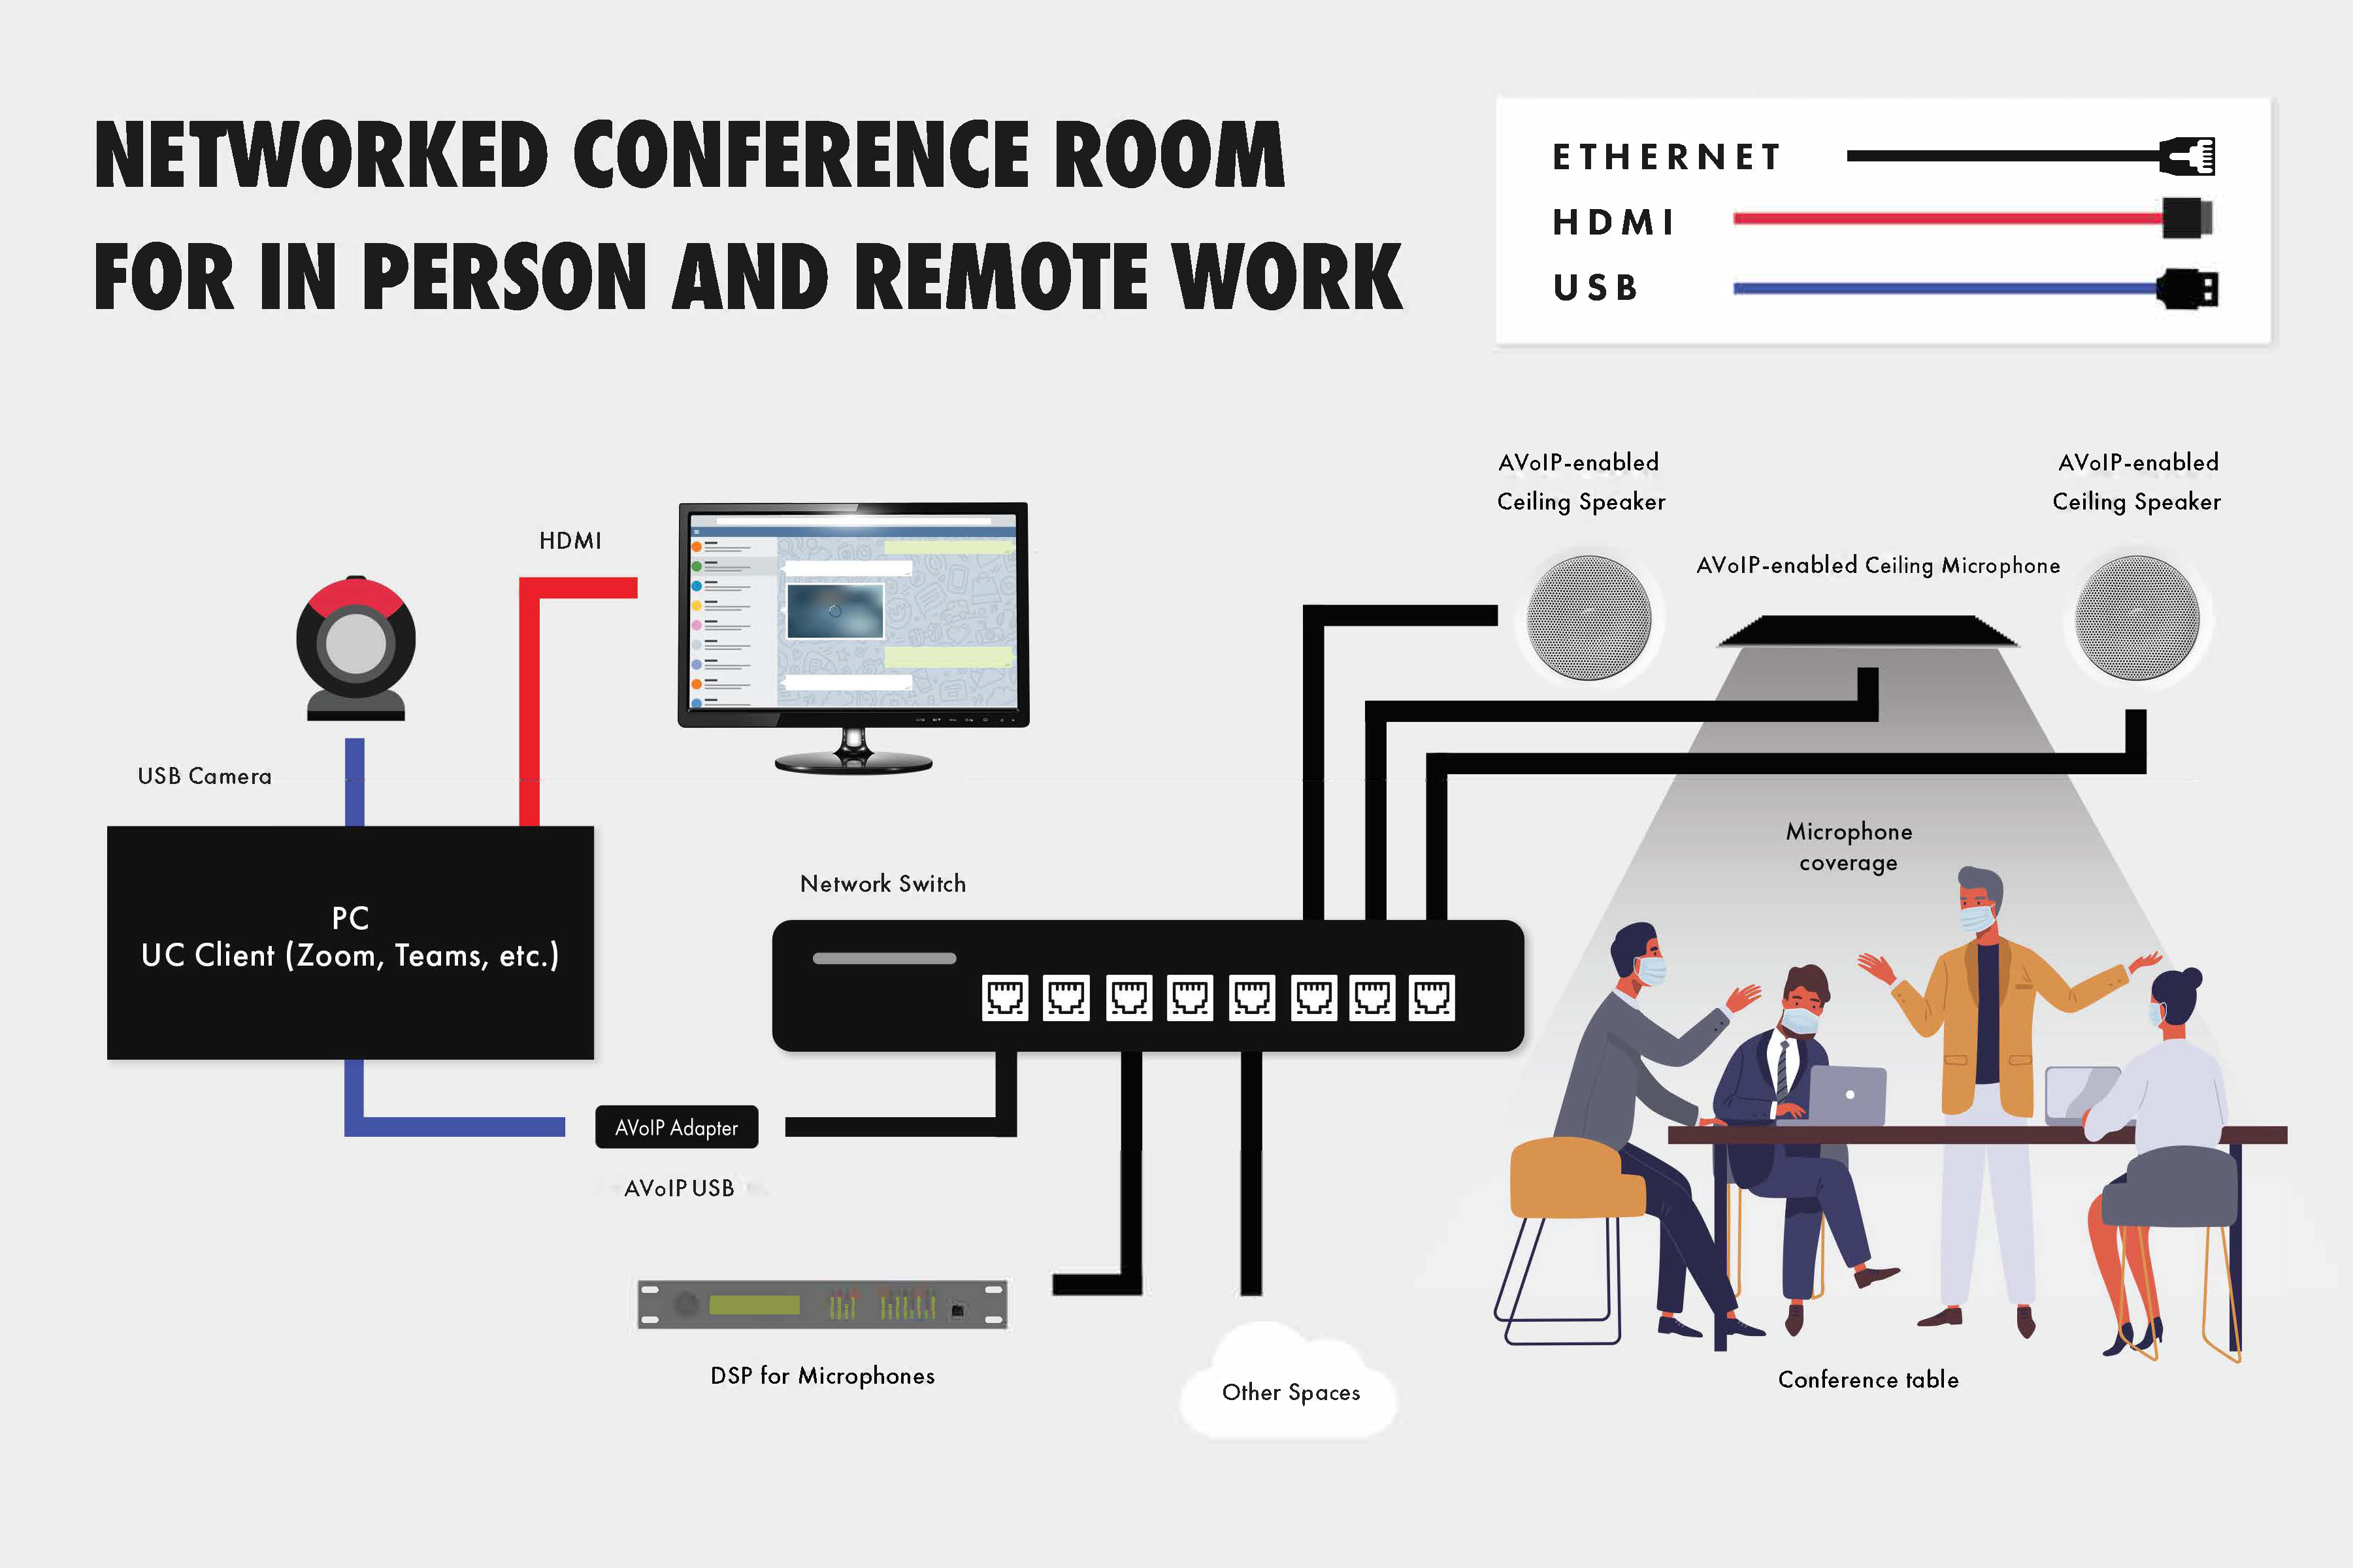 Diagram of a conference room networked using AVoIP